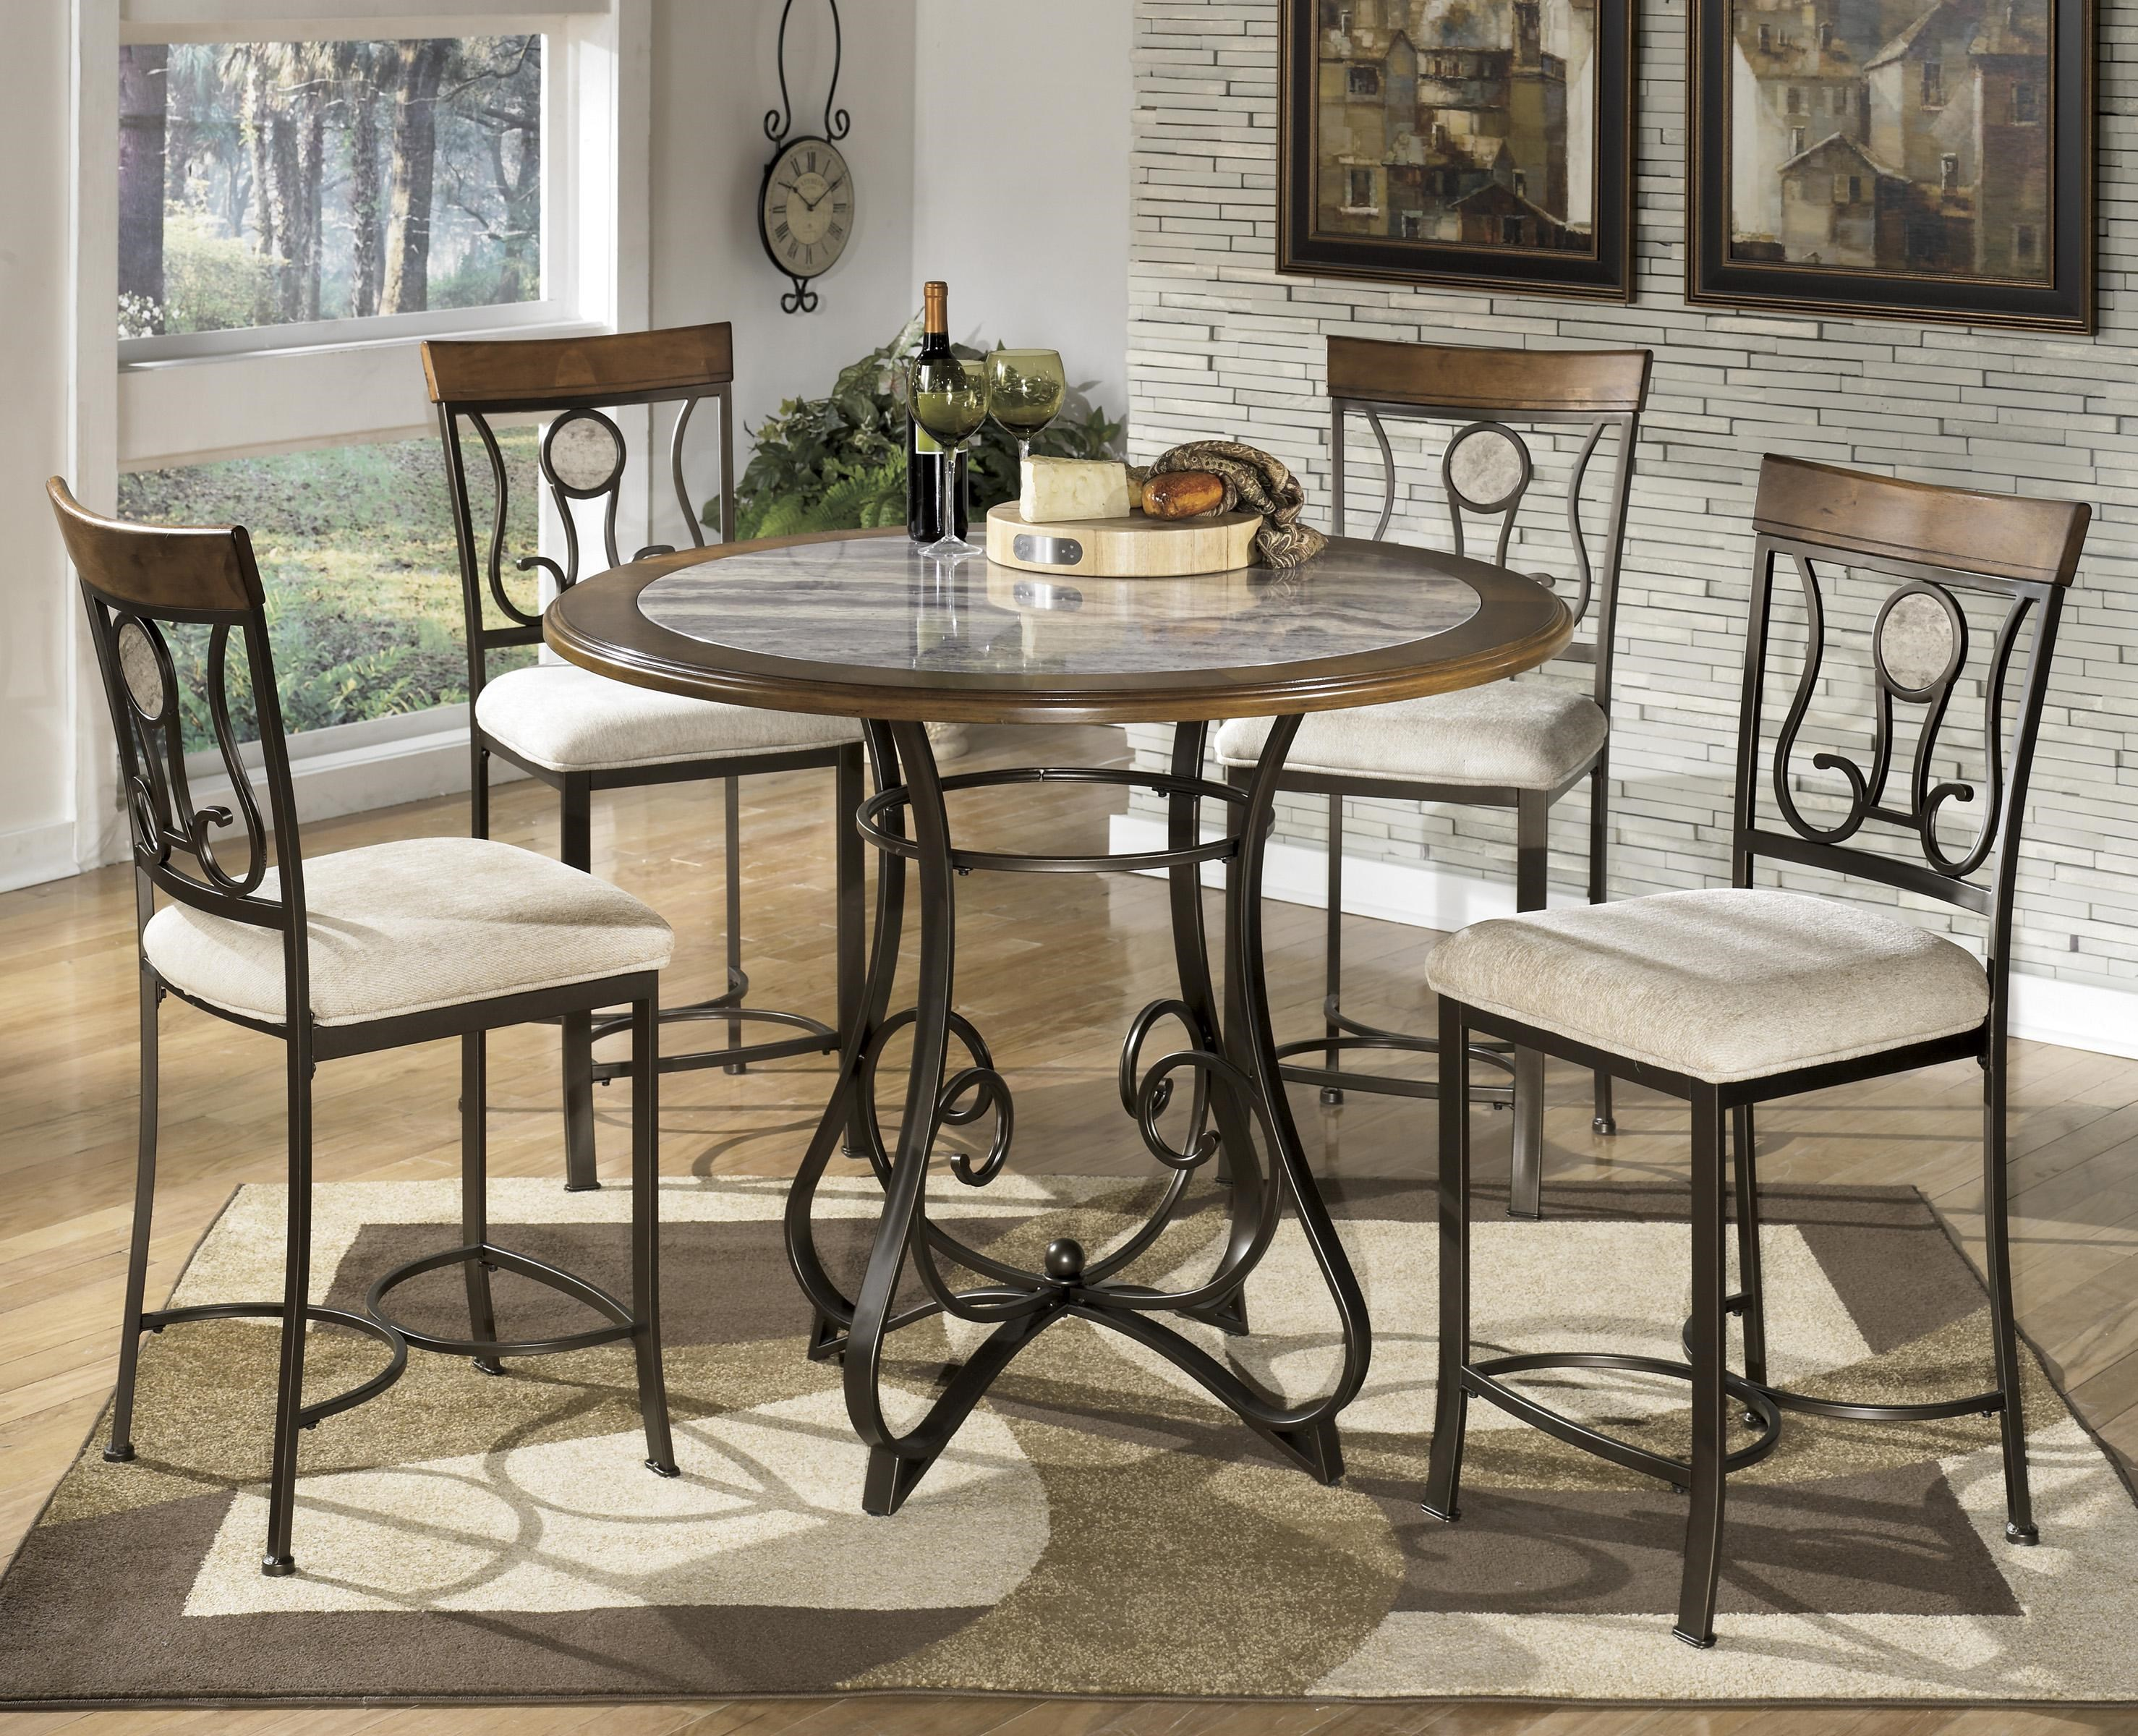 Signature Design By Ashley Hopstand 5 Piece Round Counter Table Set With  Steel Frame U0026